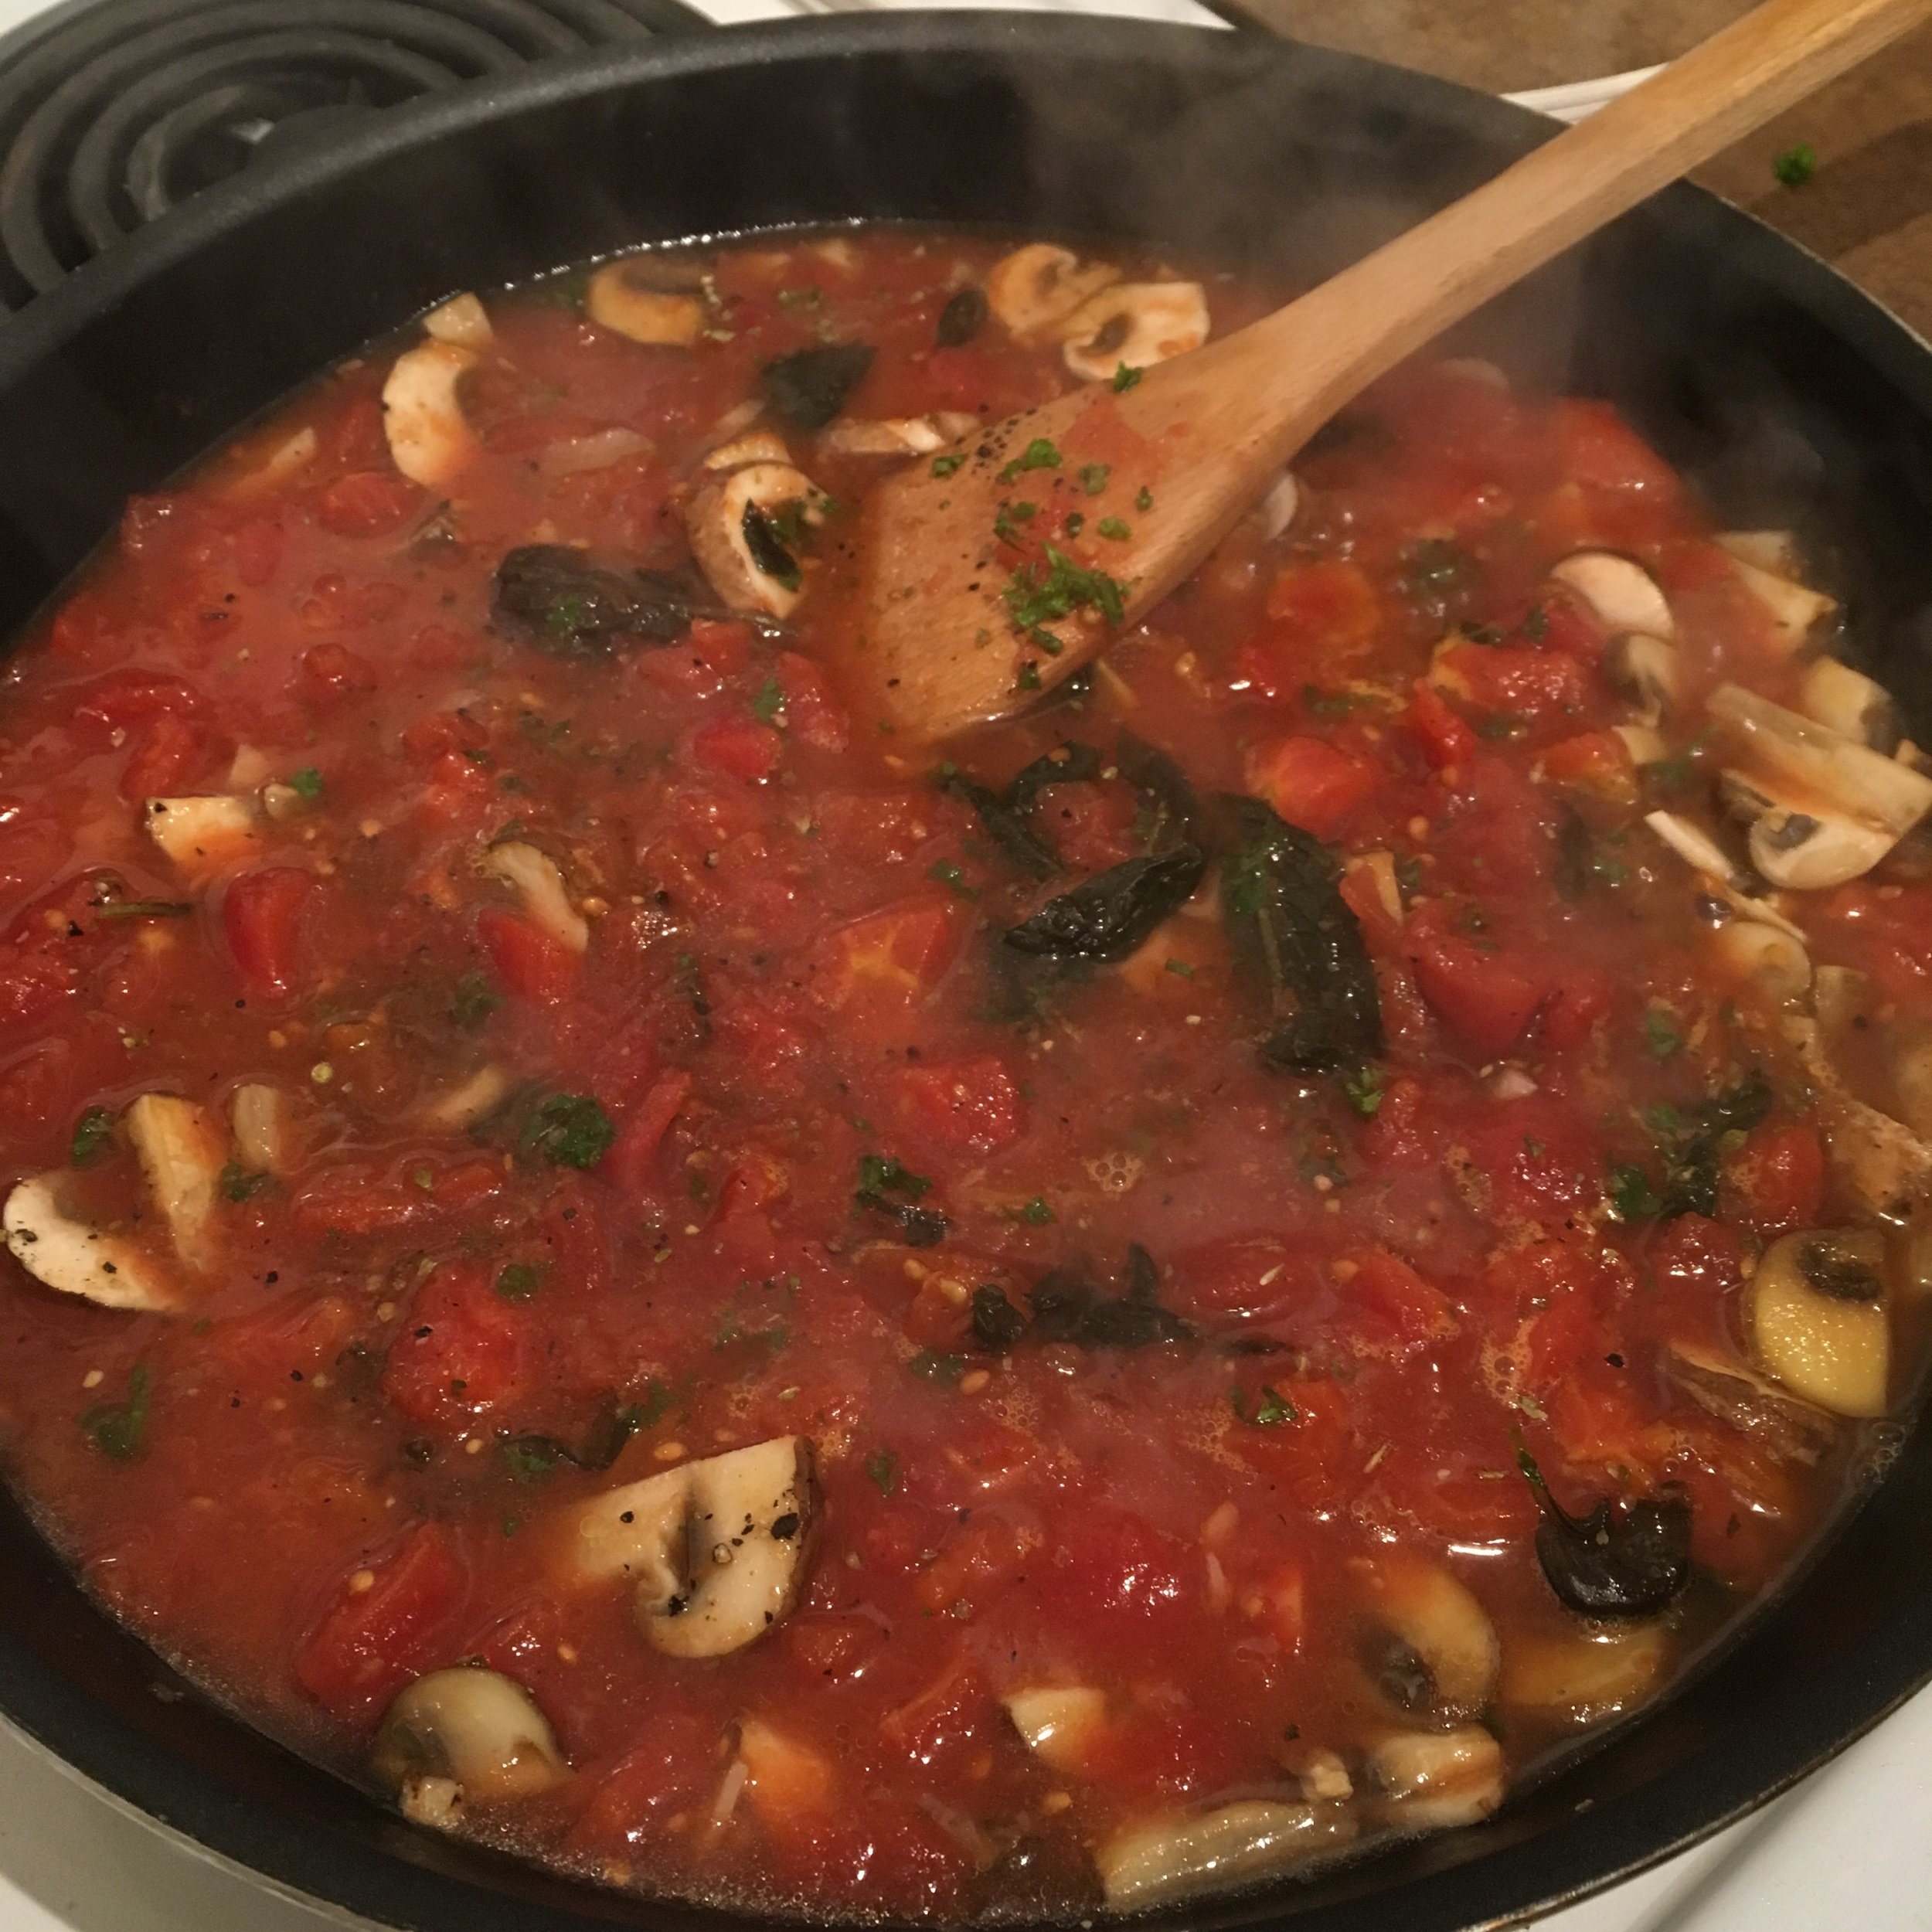 Recreating my dad's famous tomato sauce